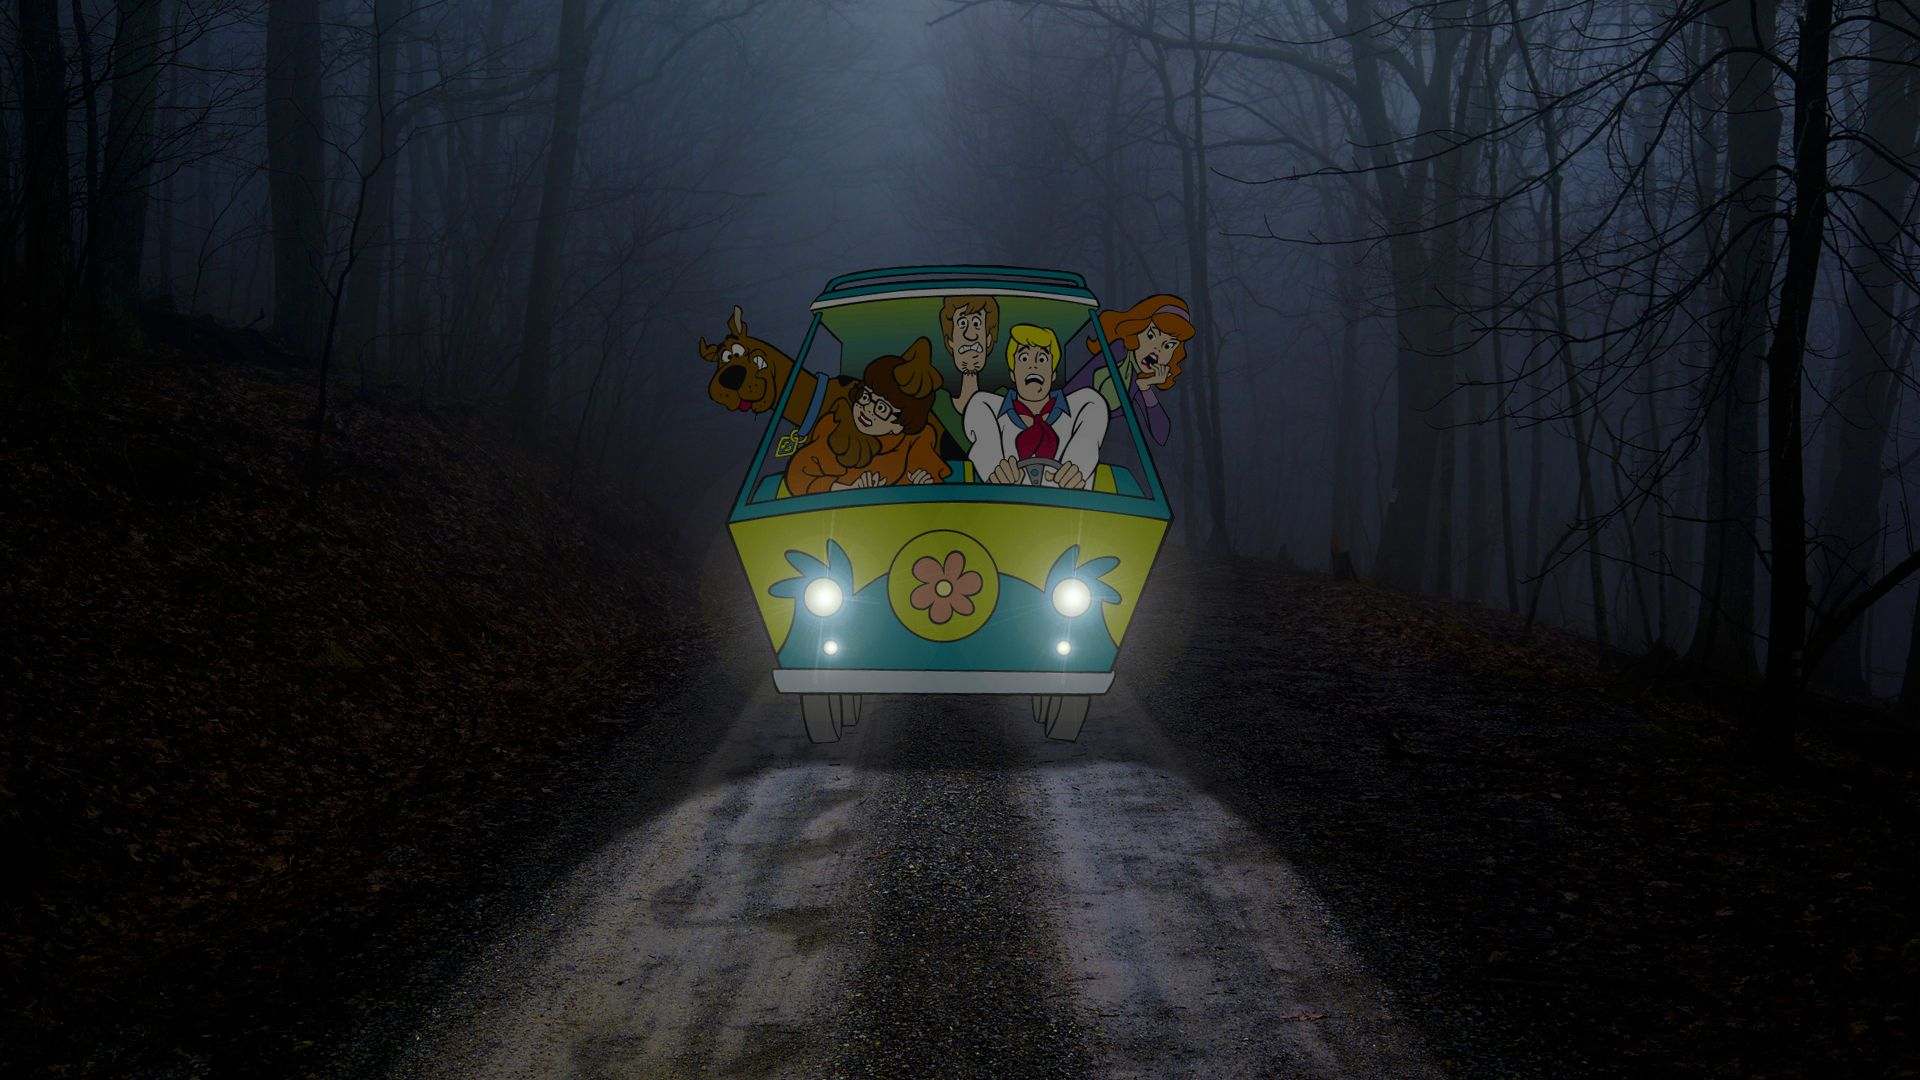 Scooby doo Characters Wallpaper for PC (3)